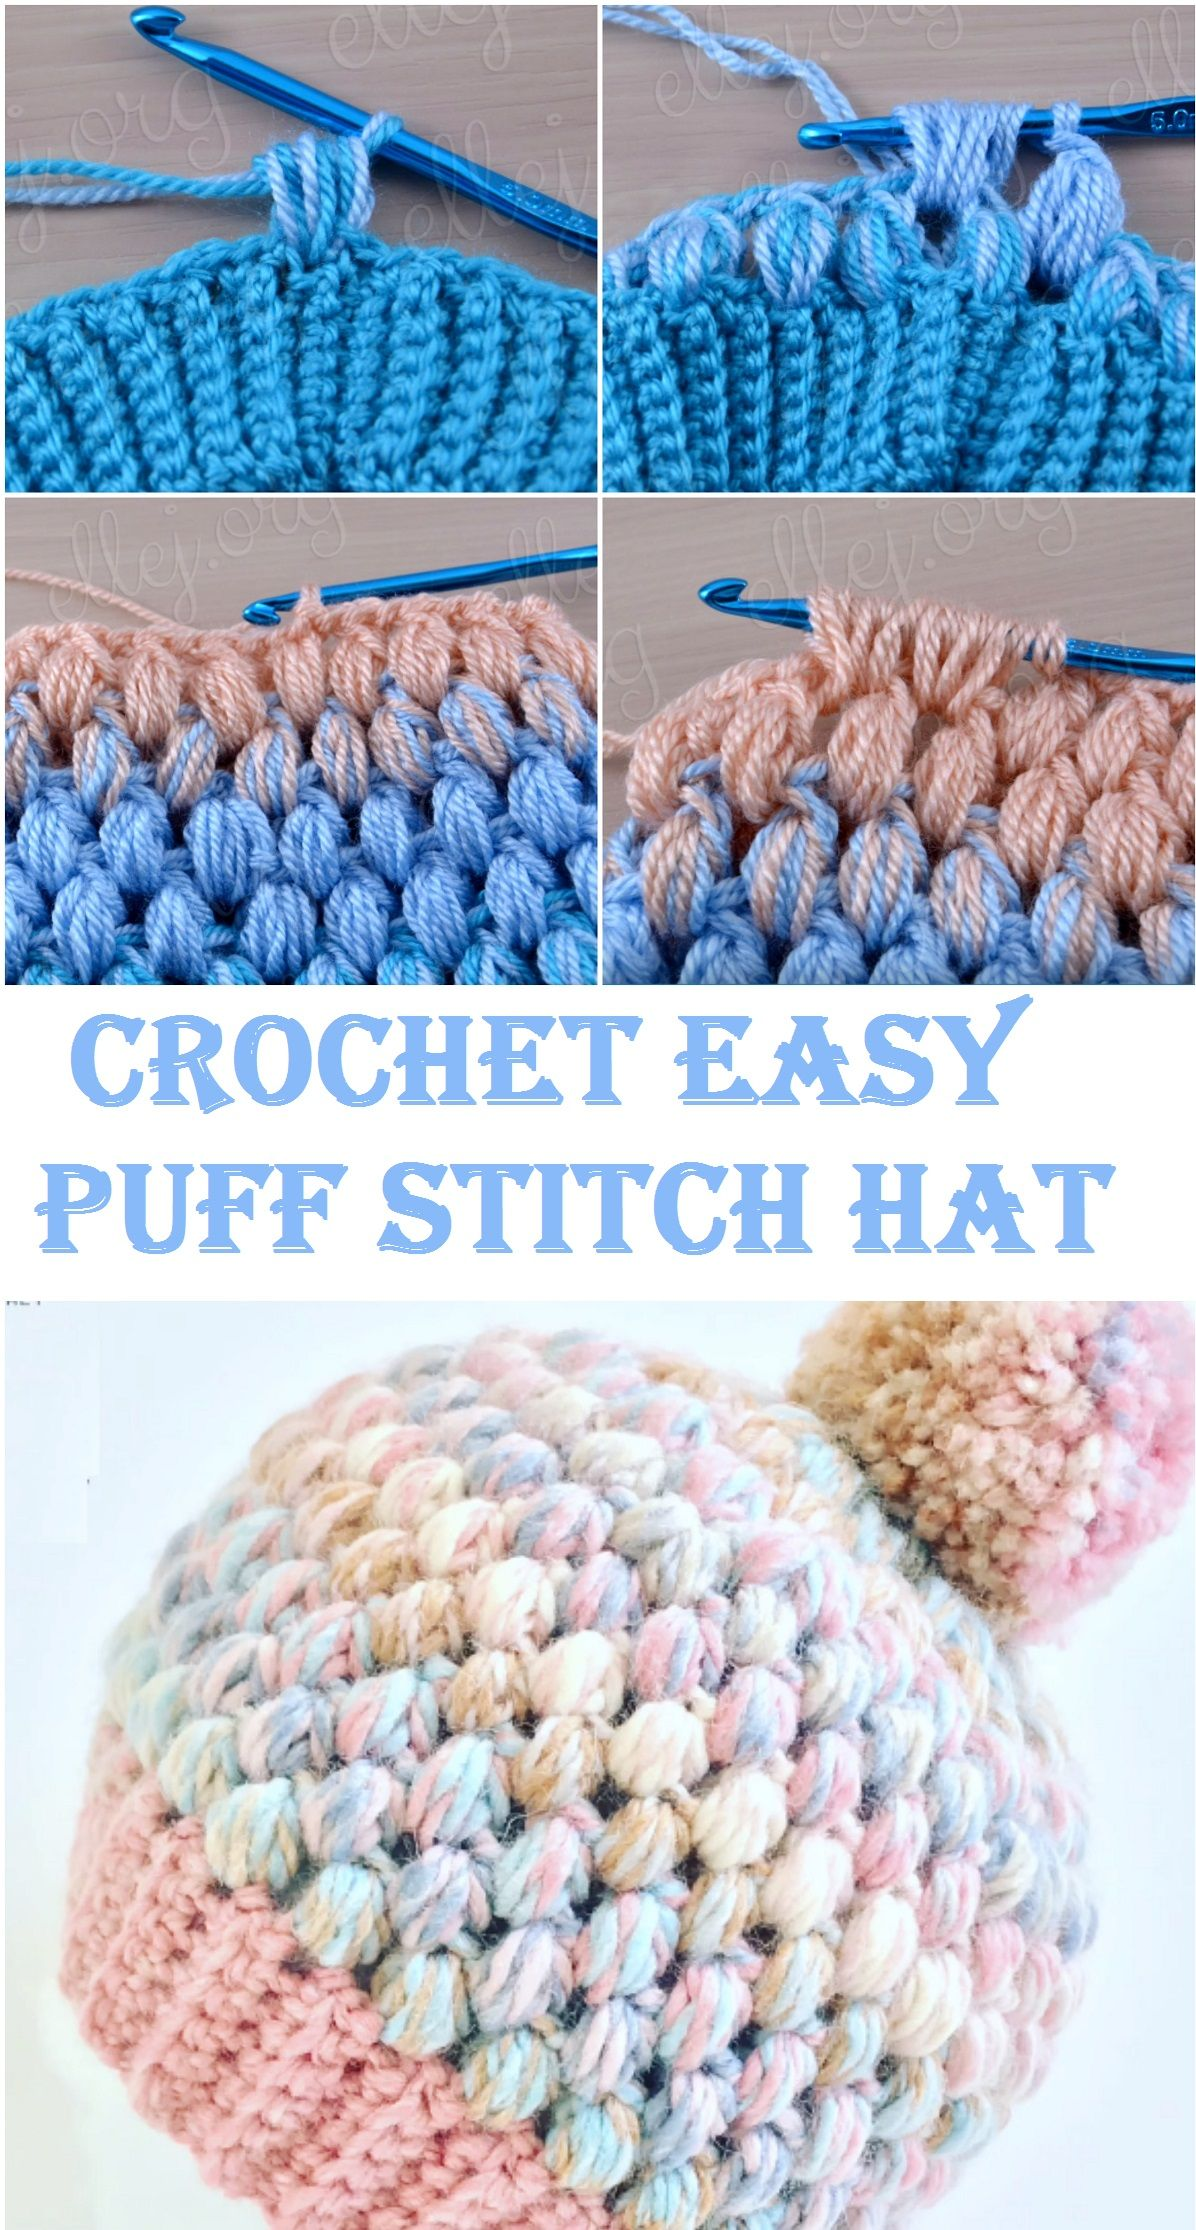 Crochet Easy Puff Stitch Hat | Crochet | Pinterest | Gorros, Gorro ...